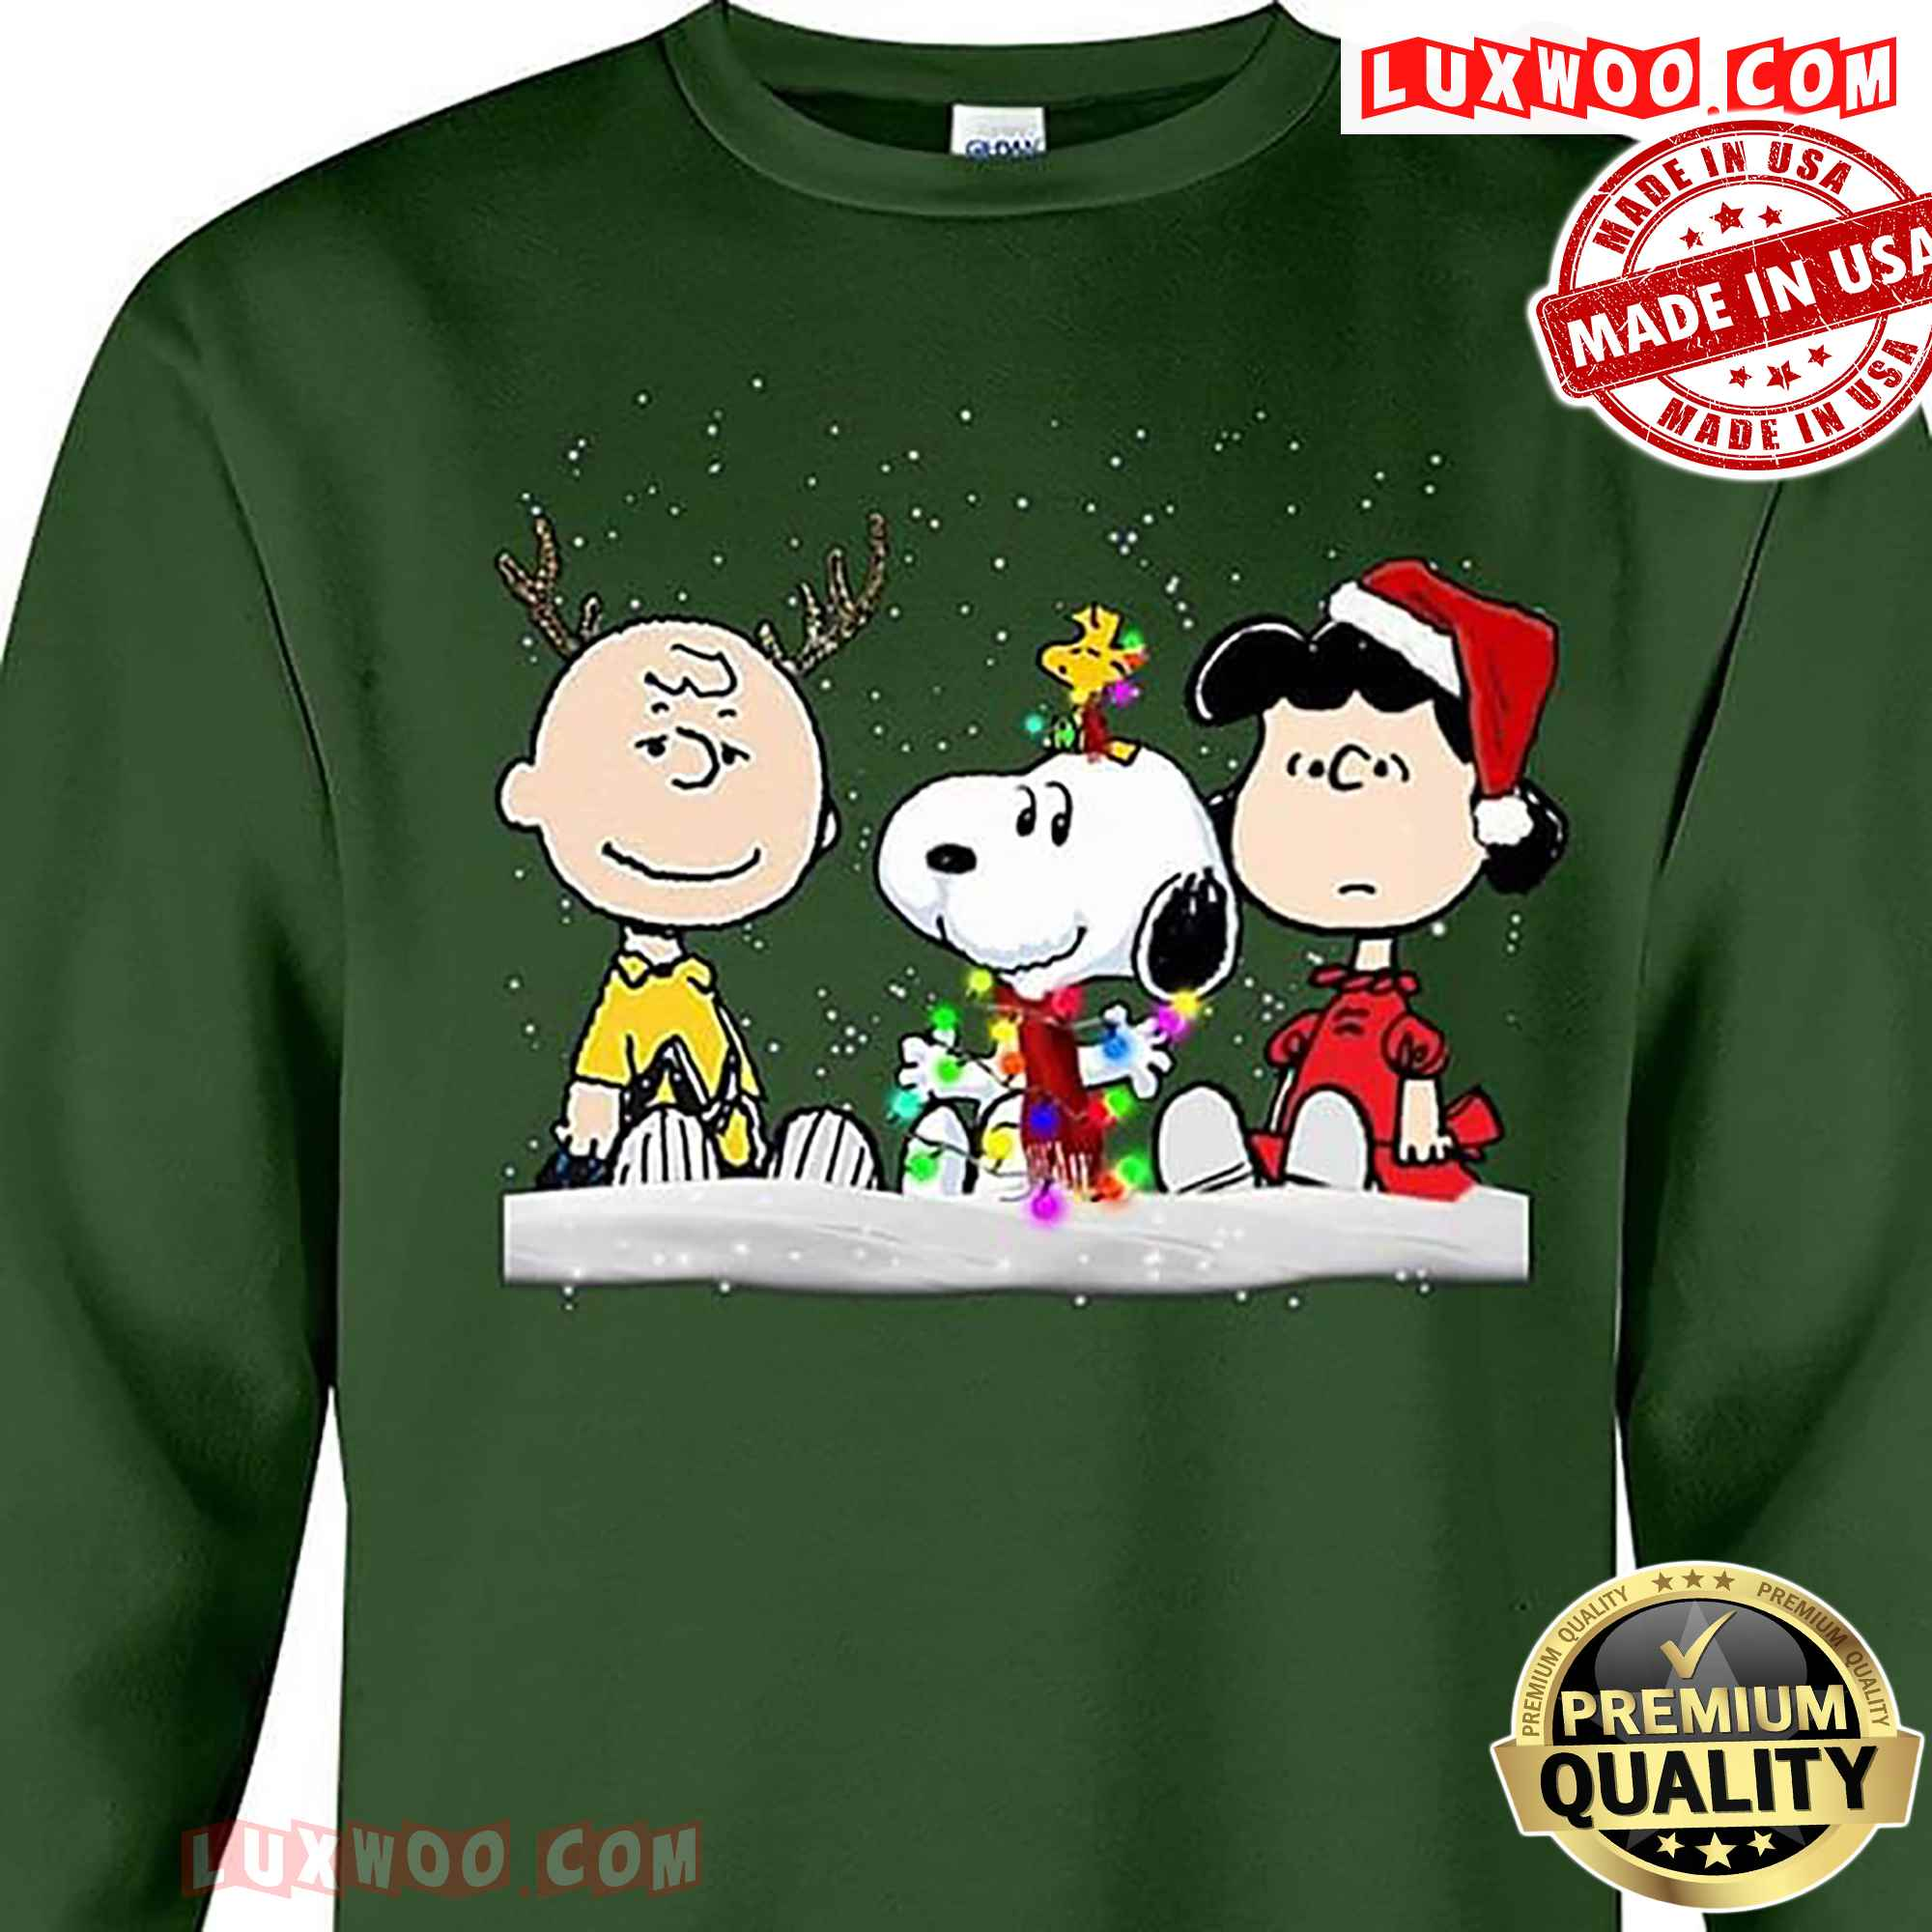 Peanuts Charlie Brown Lucy Van Pelt And Snoopy Christmas